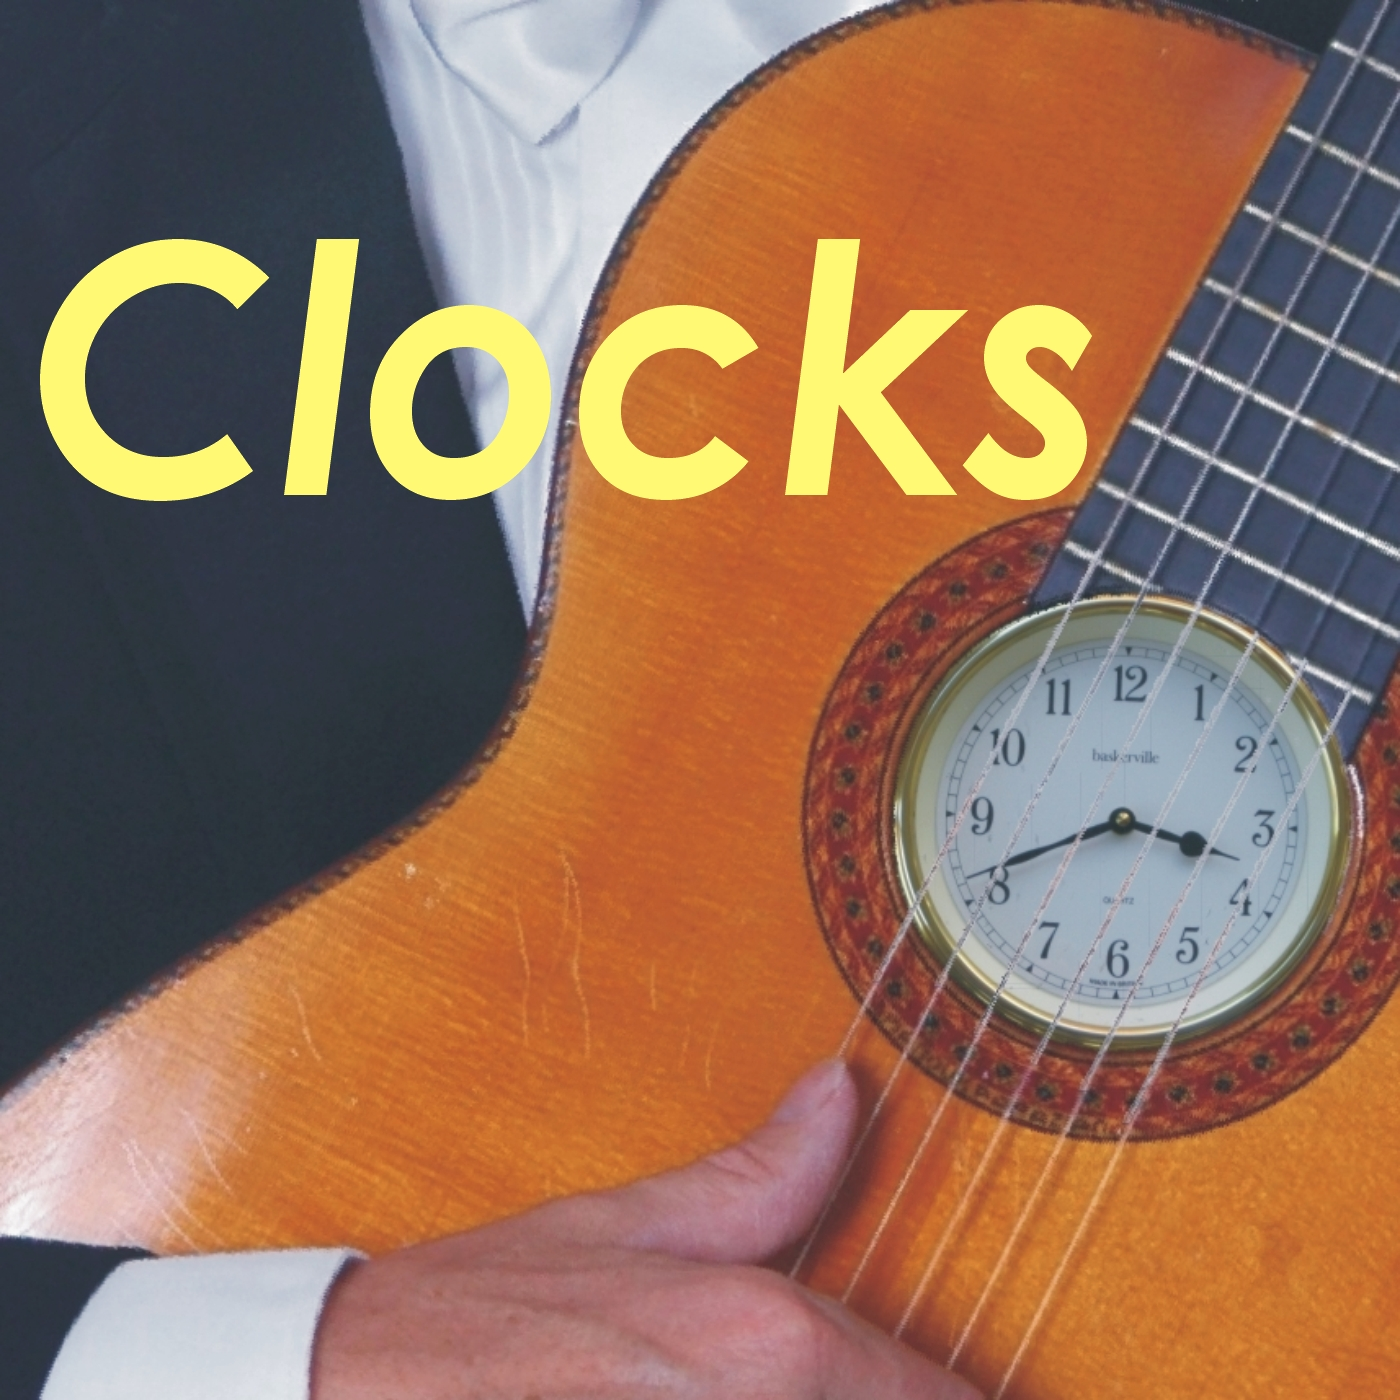 Coldplay Clocks single photo.jpg Photo